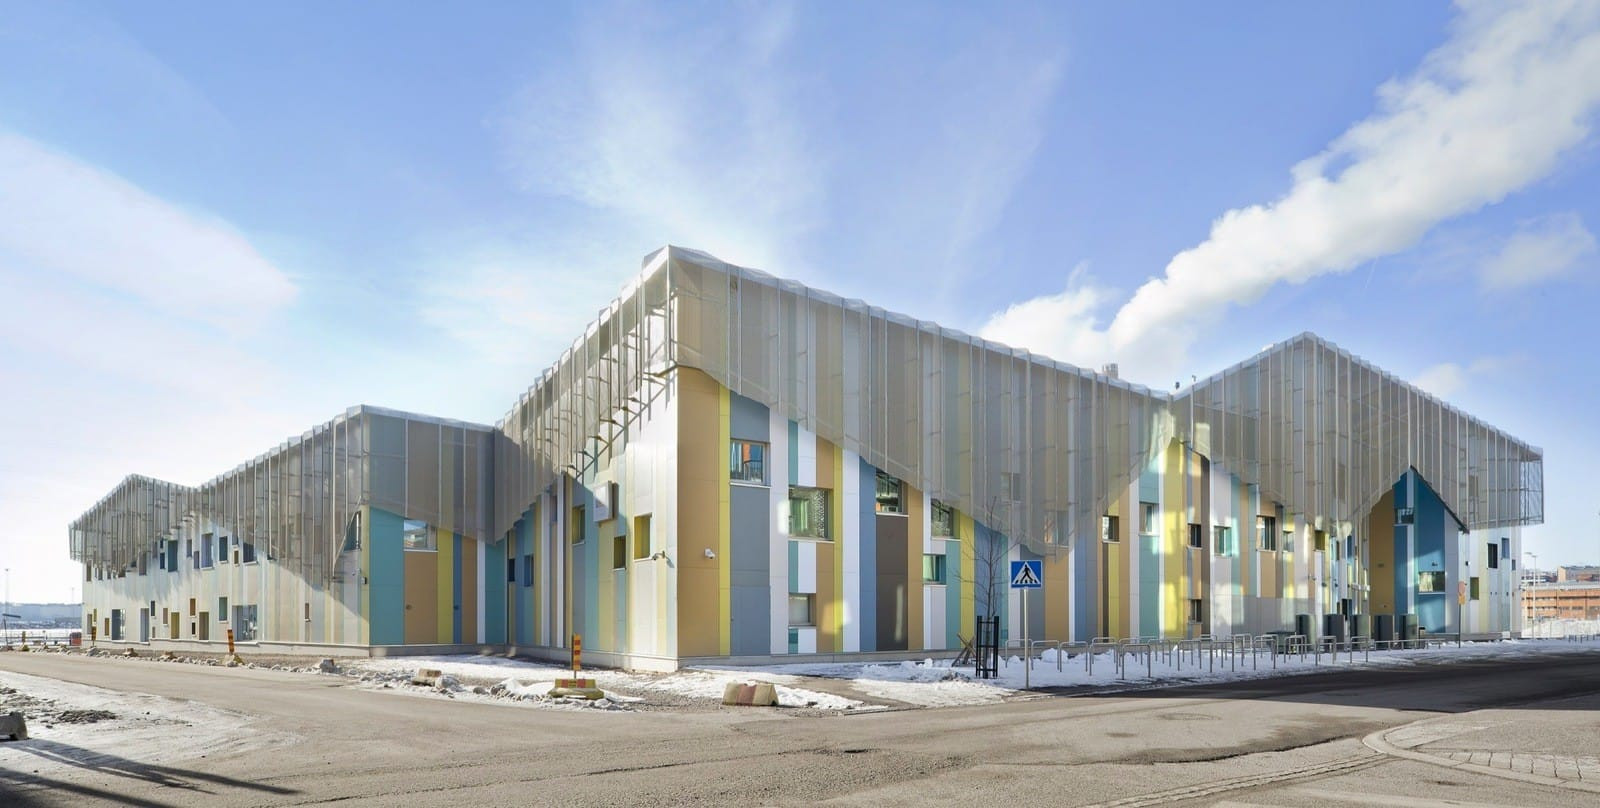 Школа и детский сад Palvakoti Kalasatama в Хельсинки от JKMM Architects, HQ architecture, HQarch, HQ arch, high quality architecture